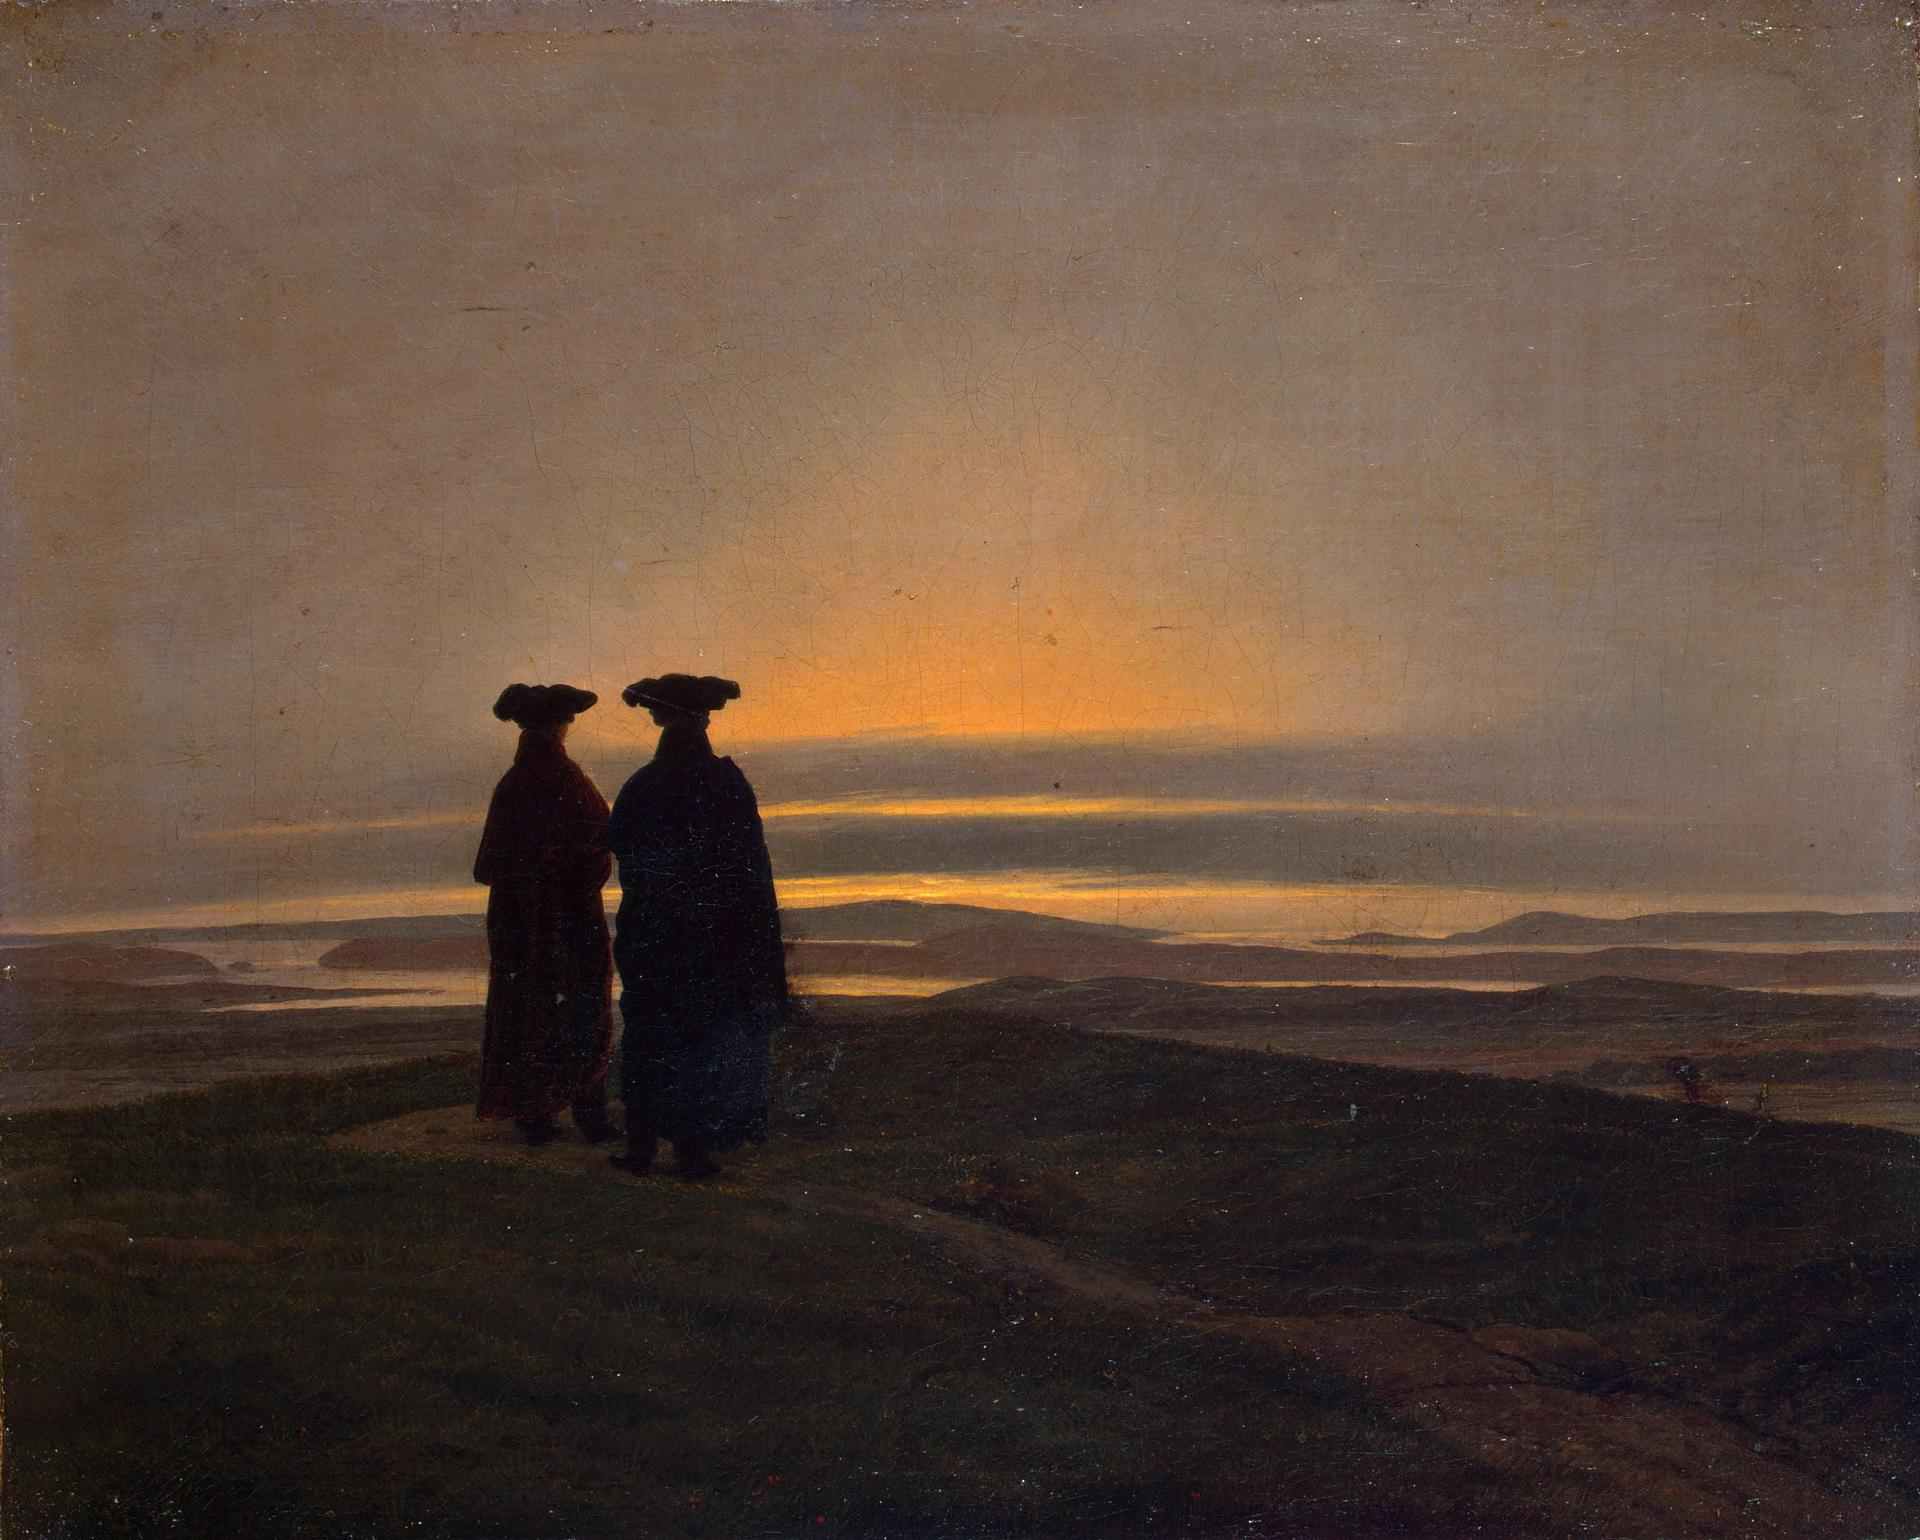 The sunset, Caspar David Friedrich, 1830-1835, Museo dell'Ermitage, San Pietroburgo